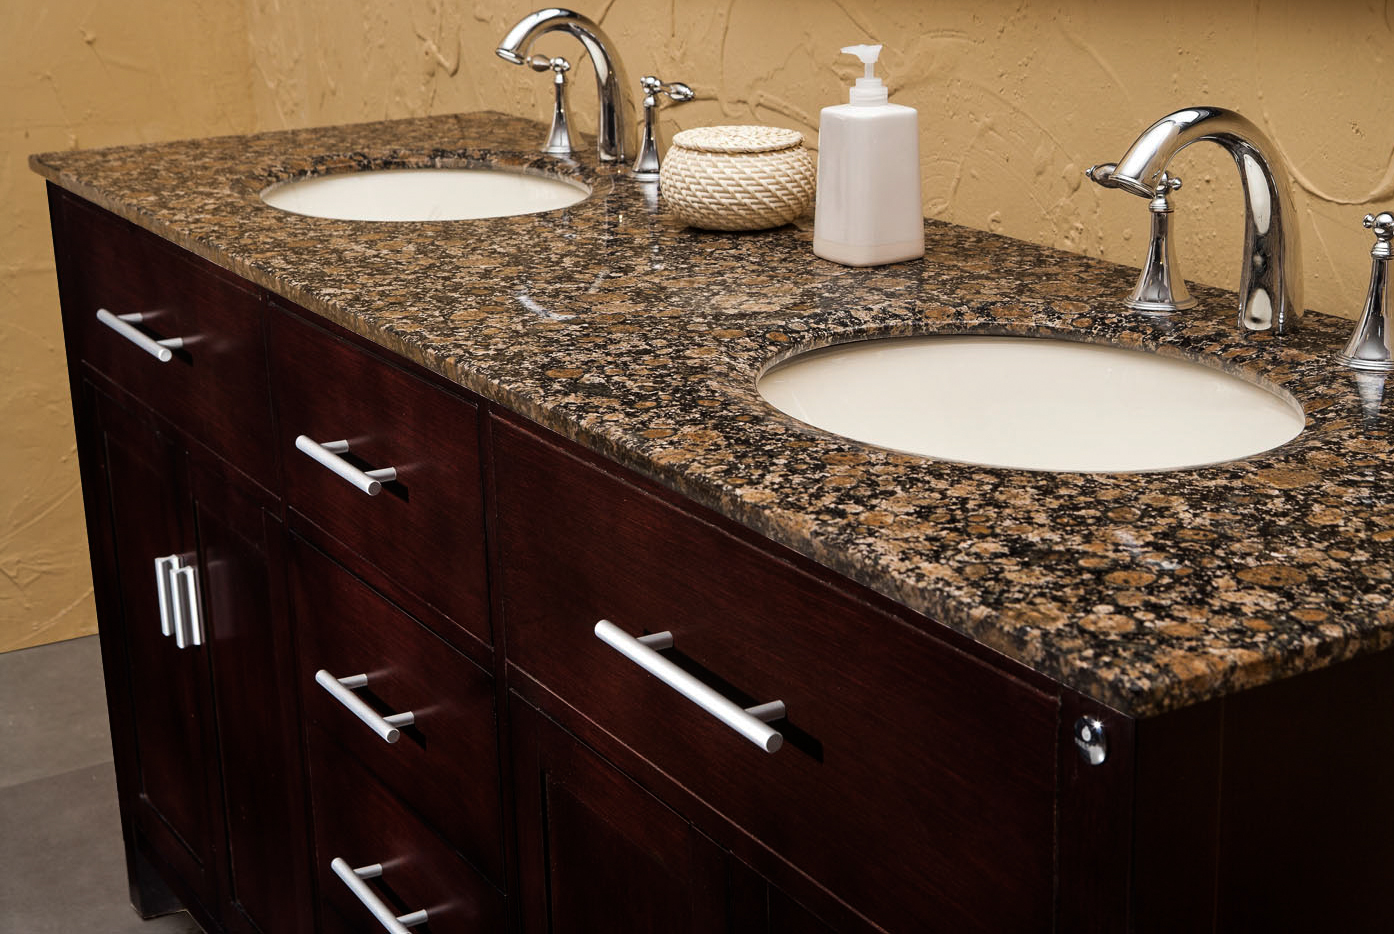 Baltic Brown Granite Kitchen Baltic Brown Granite Saint Mark Construction Supply